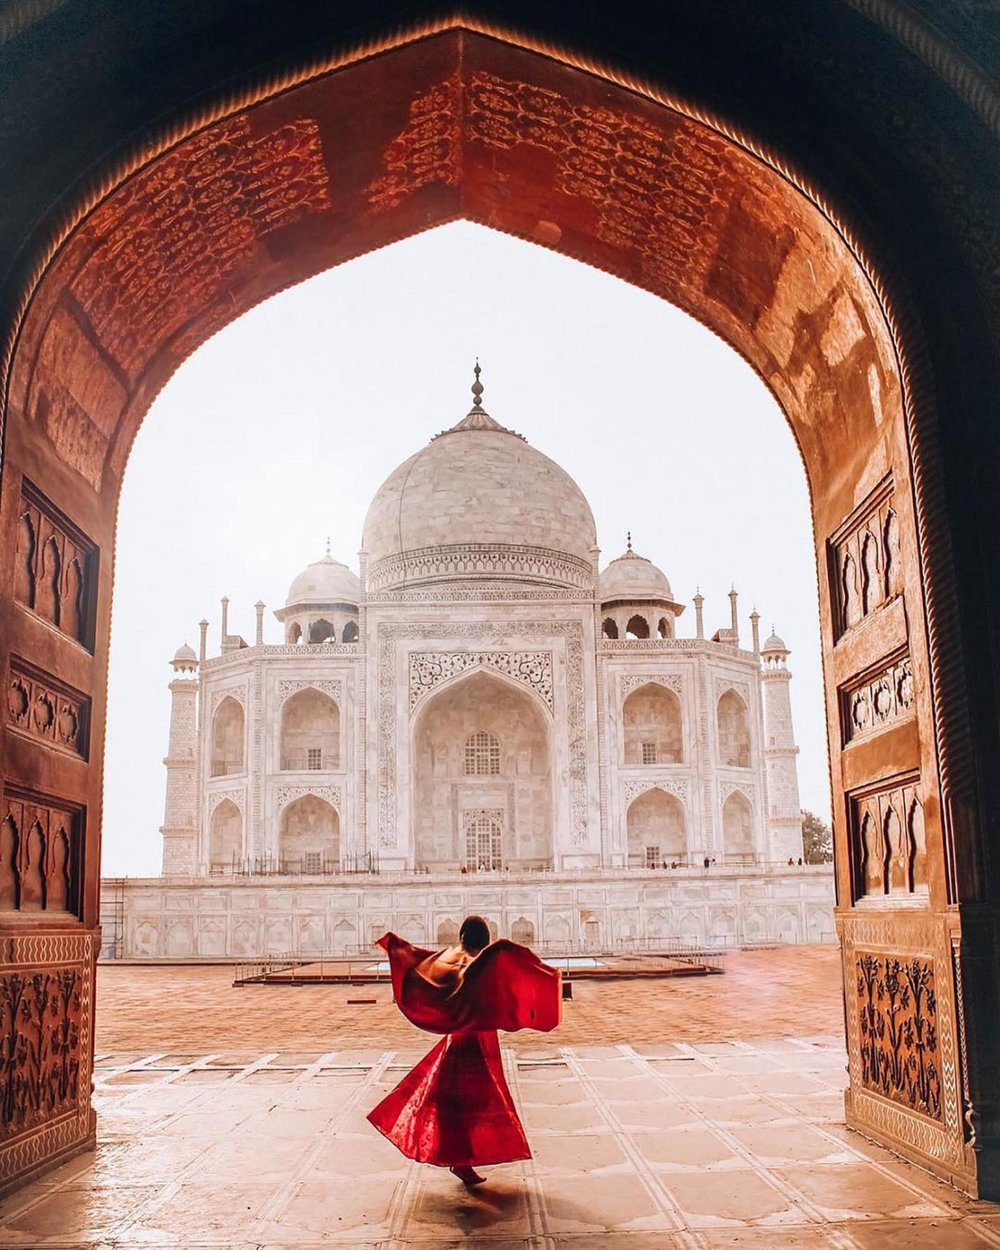 January 15 - January 25, 2020 - 10 Nights / 11 DaysGroup Size: 16*12 Spots Open**VISA REQUIRED*Immerse yourself in culture and join us as we explore the pink city and the city of lakes in Rajasthan, watch the sunrise in Agra overlooking the Taj Mahal, and get ready for the most experiential trip of your life!Here's a little of what you can expect:*Luxury Hotel Accommodations**Curated Dining Options Paired with Local Delicacies**Stroll through Golden Palaces + Historic Forts**Take an Authentic Cooking Class**And a Squad of Girls to Keep You Company!*